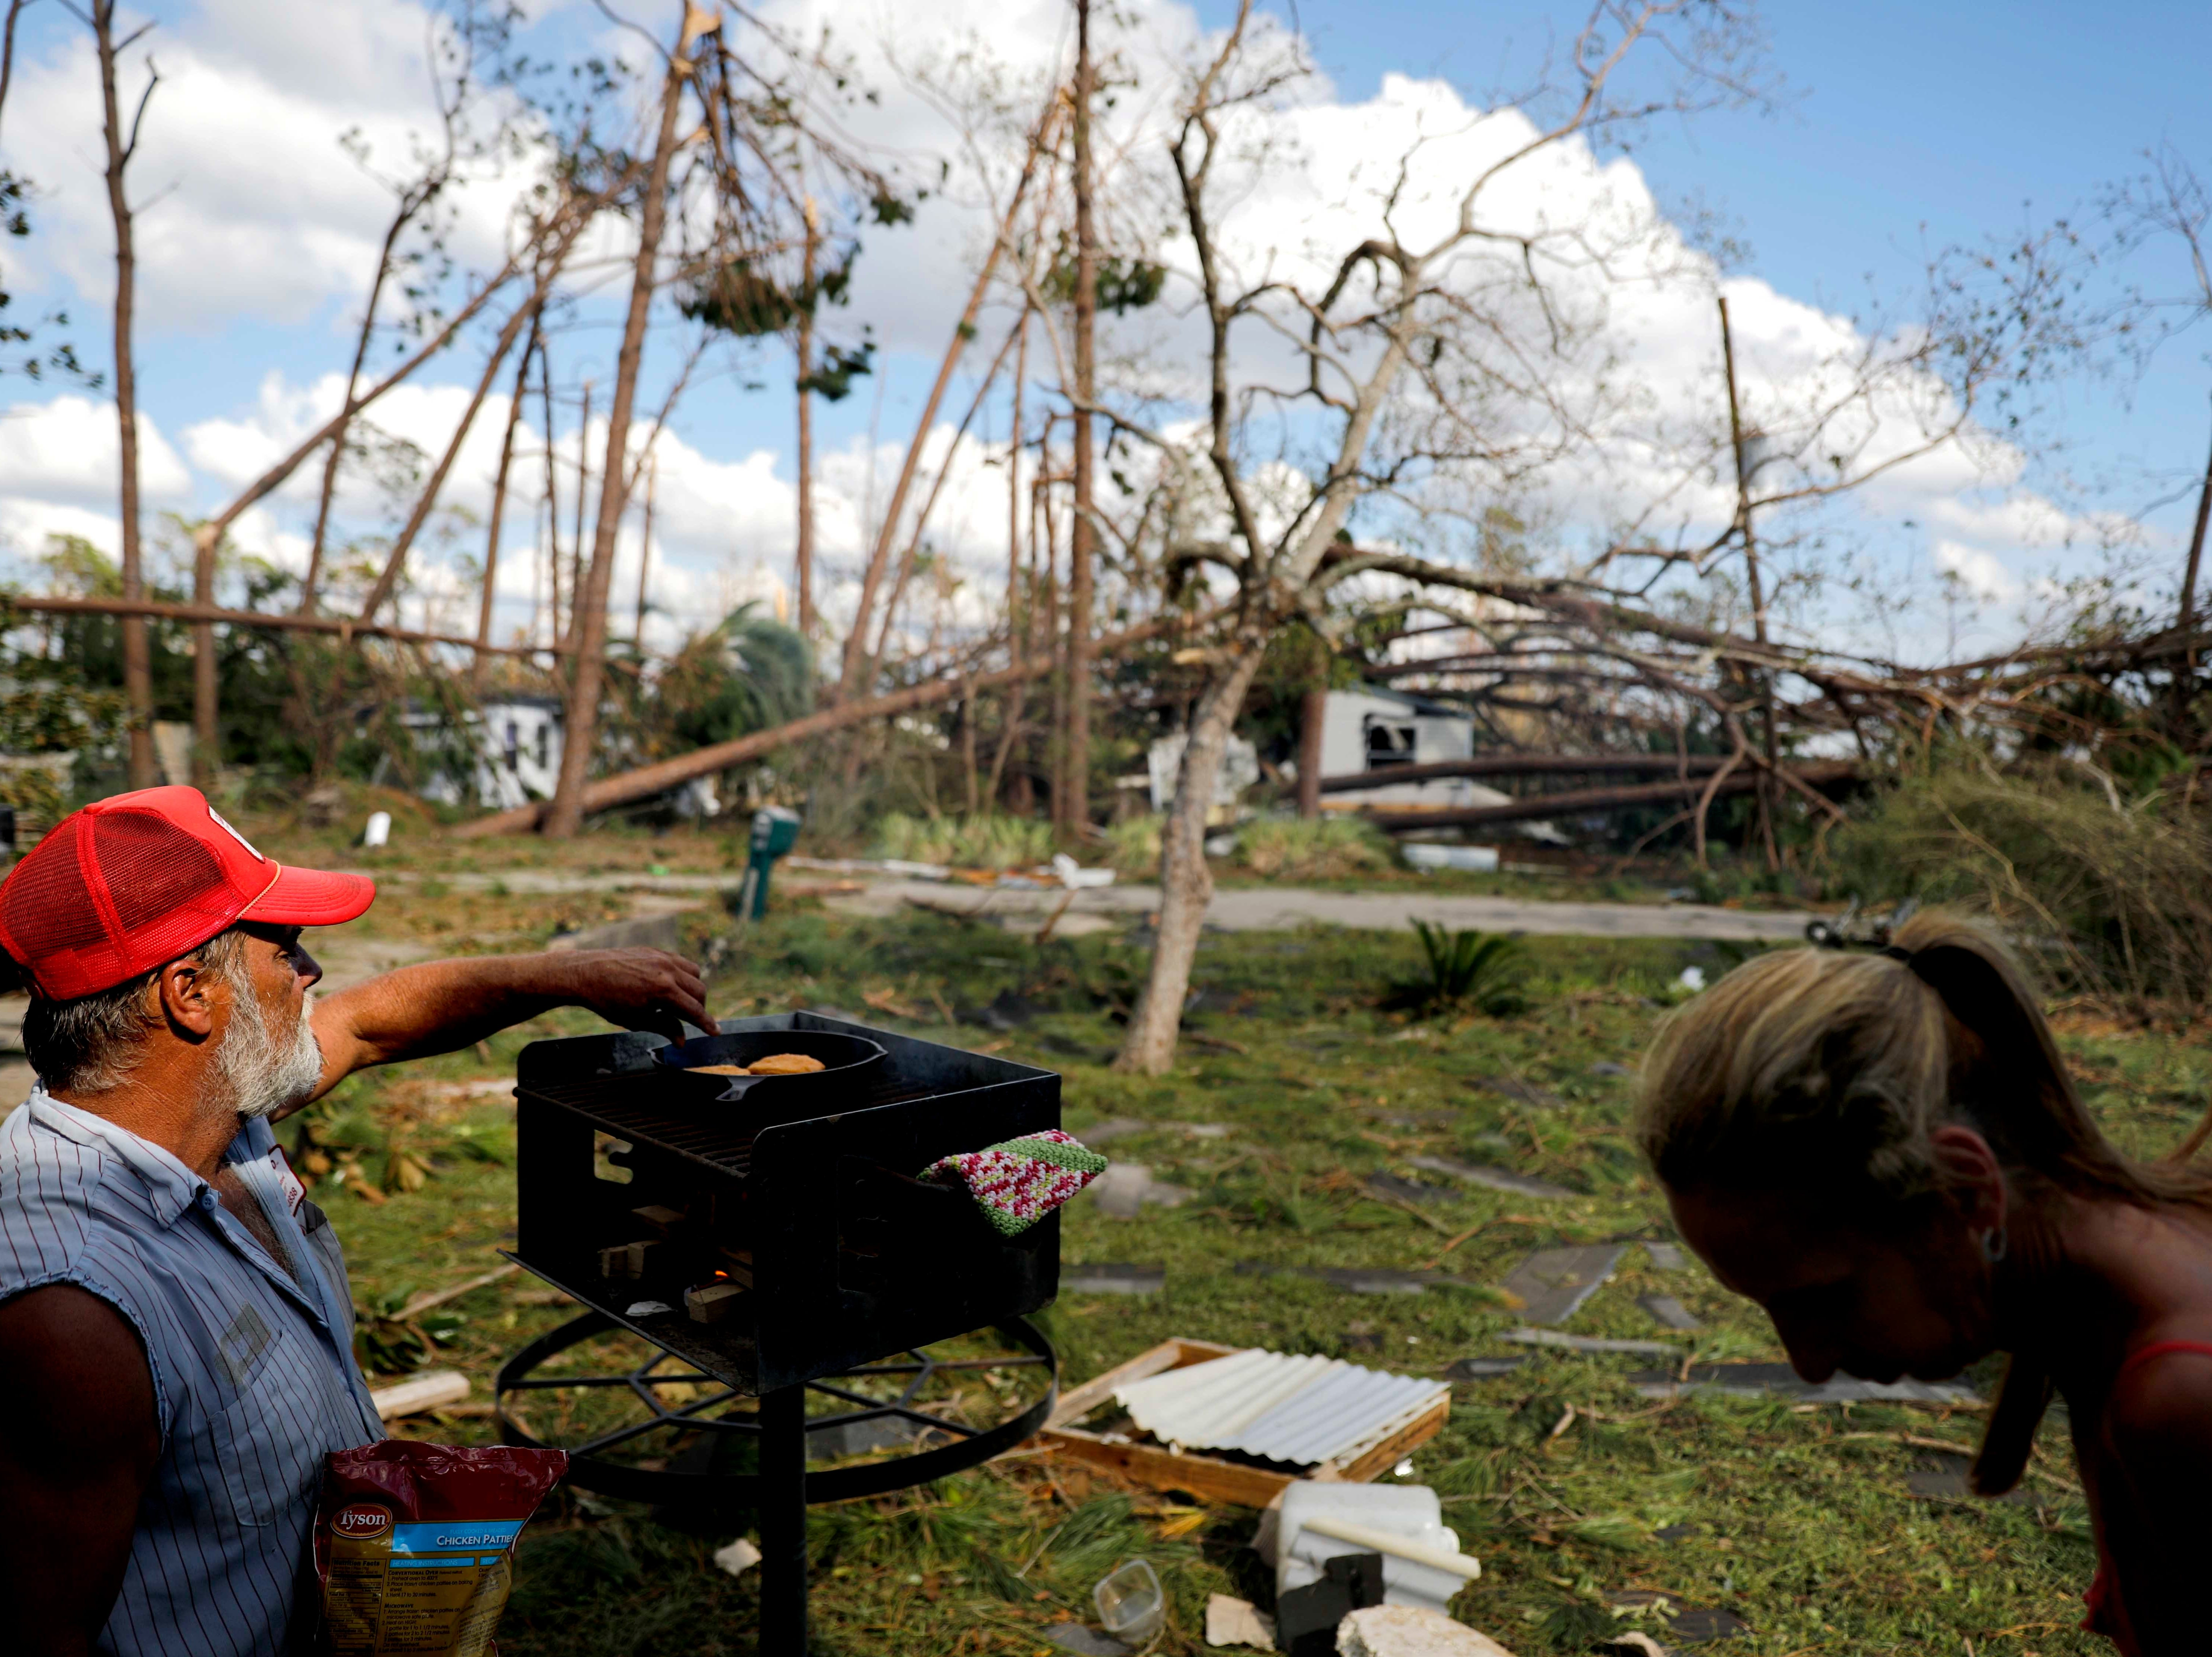 Monica, right, and Kevin Jones cook chicken on an open flame in their front yard as homes in the background are damaged by fallen trees from hurricane Michael in Callaway, Fla., Thursday, Oct. 11, 2018.